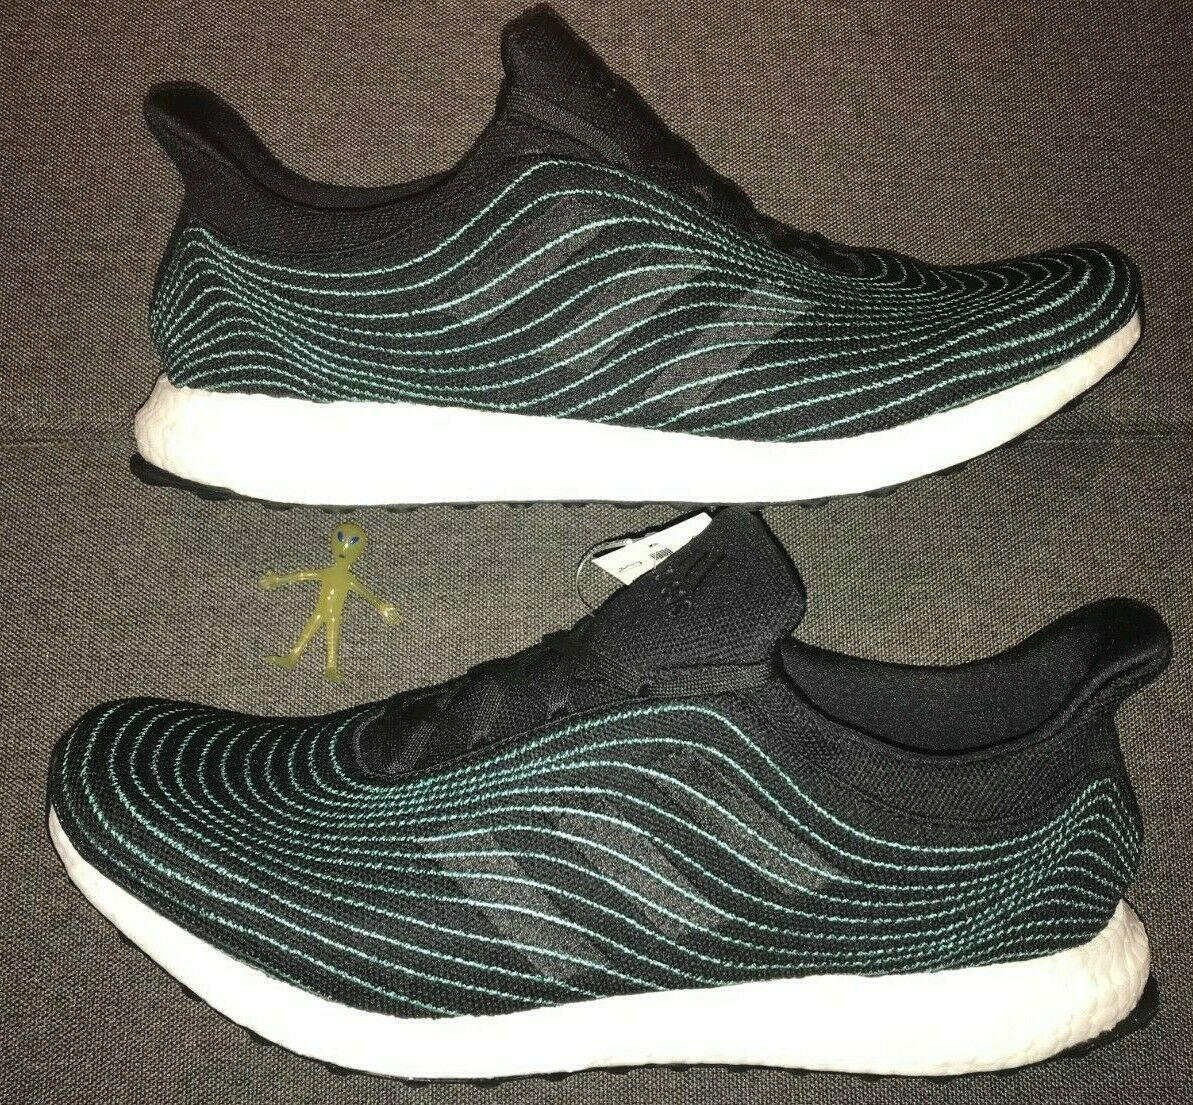 Size 13 - adidas UltraBoost DNA x Parley Core Black 2020